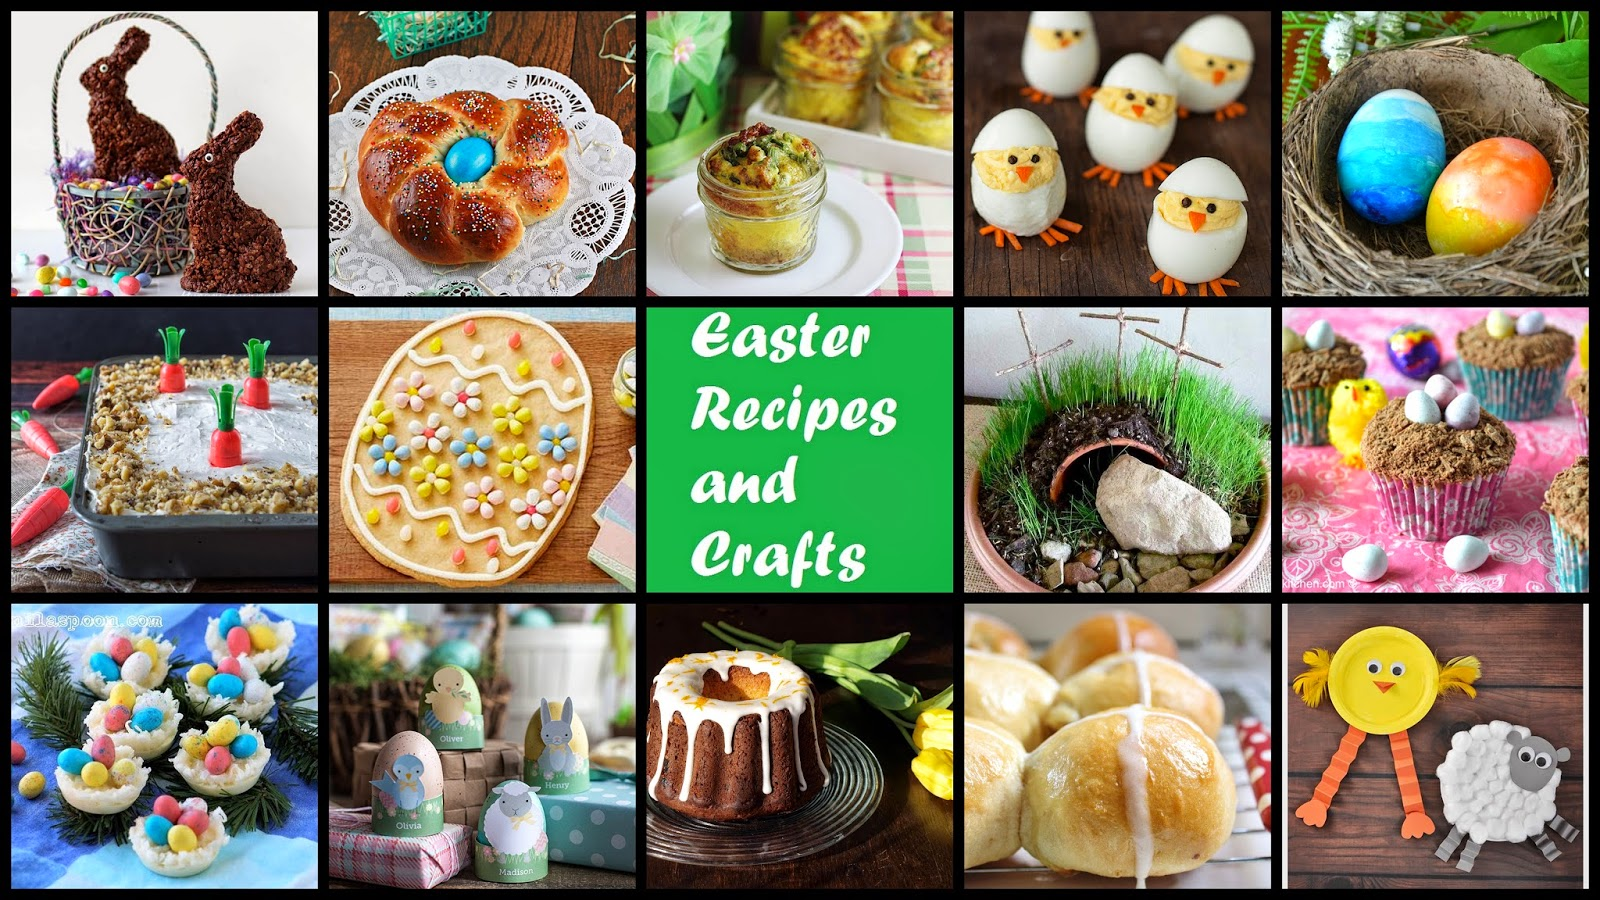 Easter recipes and crafts manila spoon in the philippines holy week semana santalenten season is a big deal so for the entire week the philippines commemorate the sacrifice forumfinder Gallery